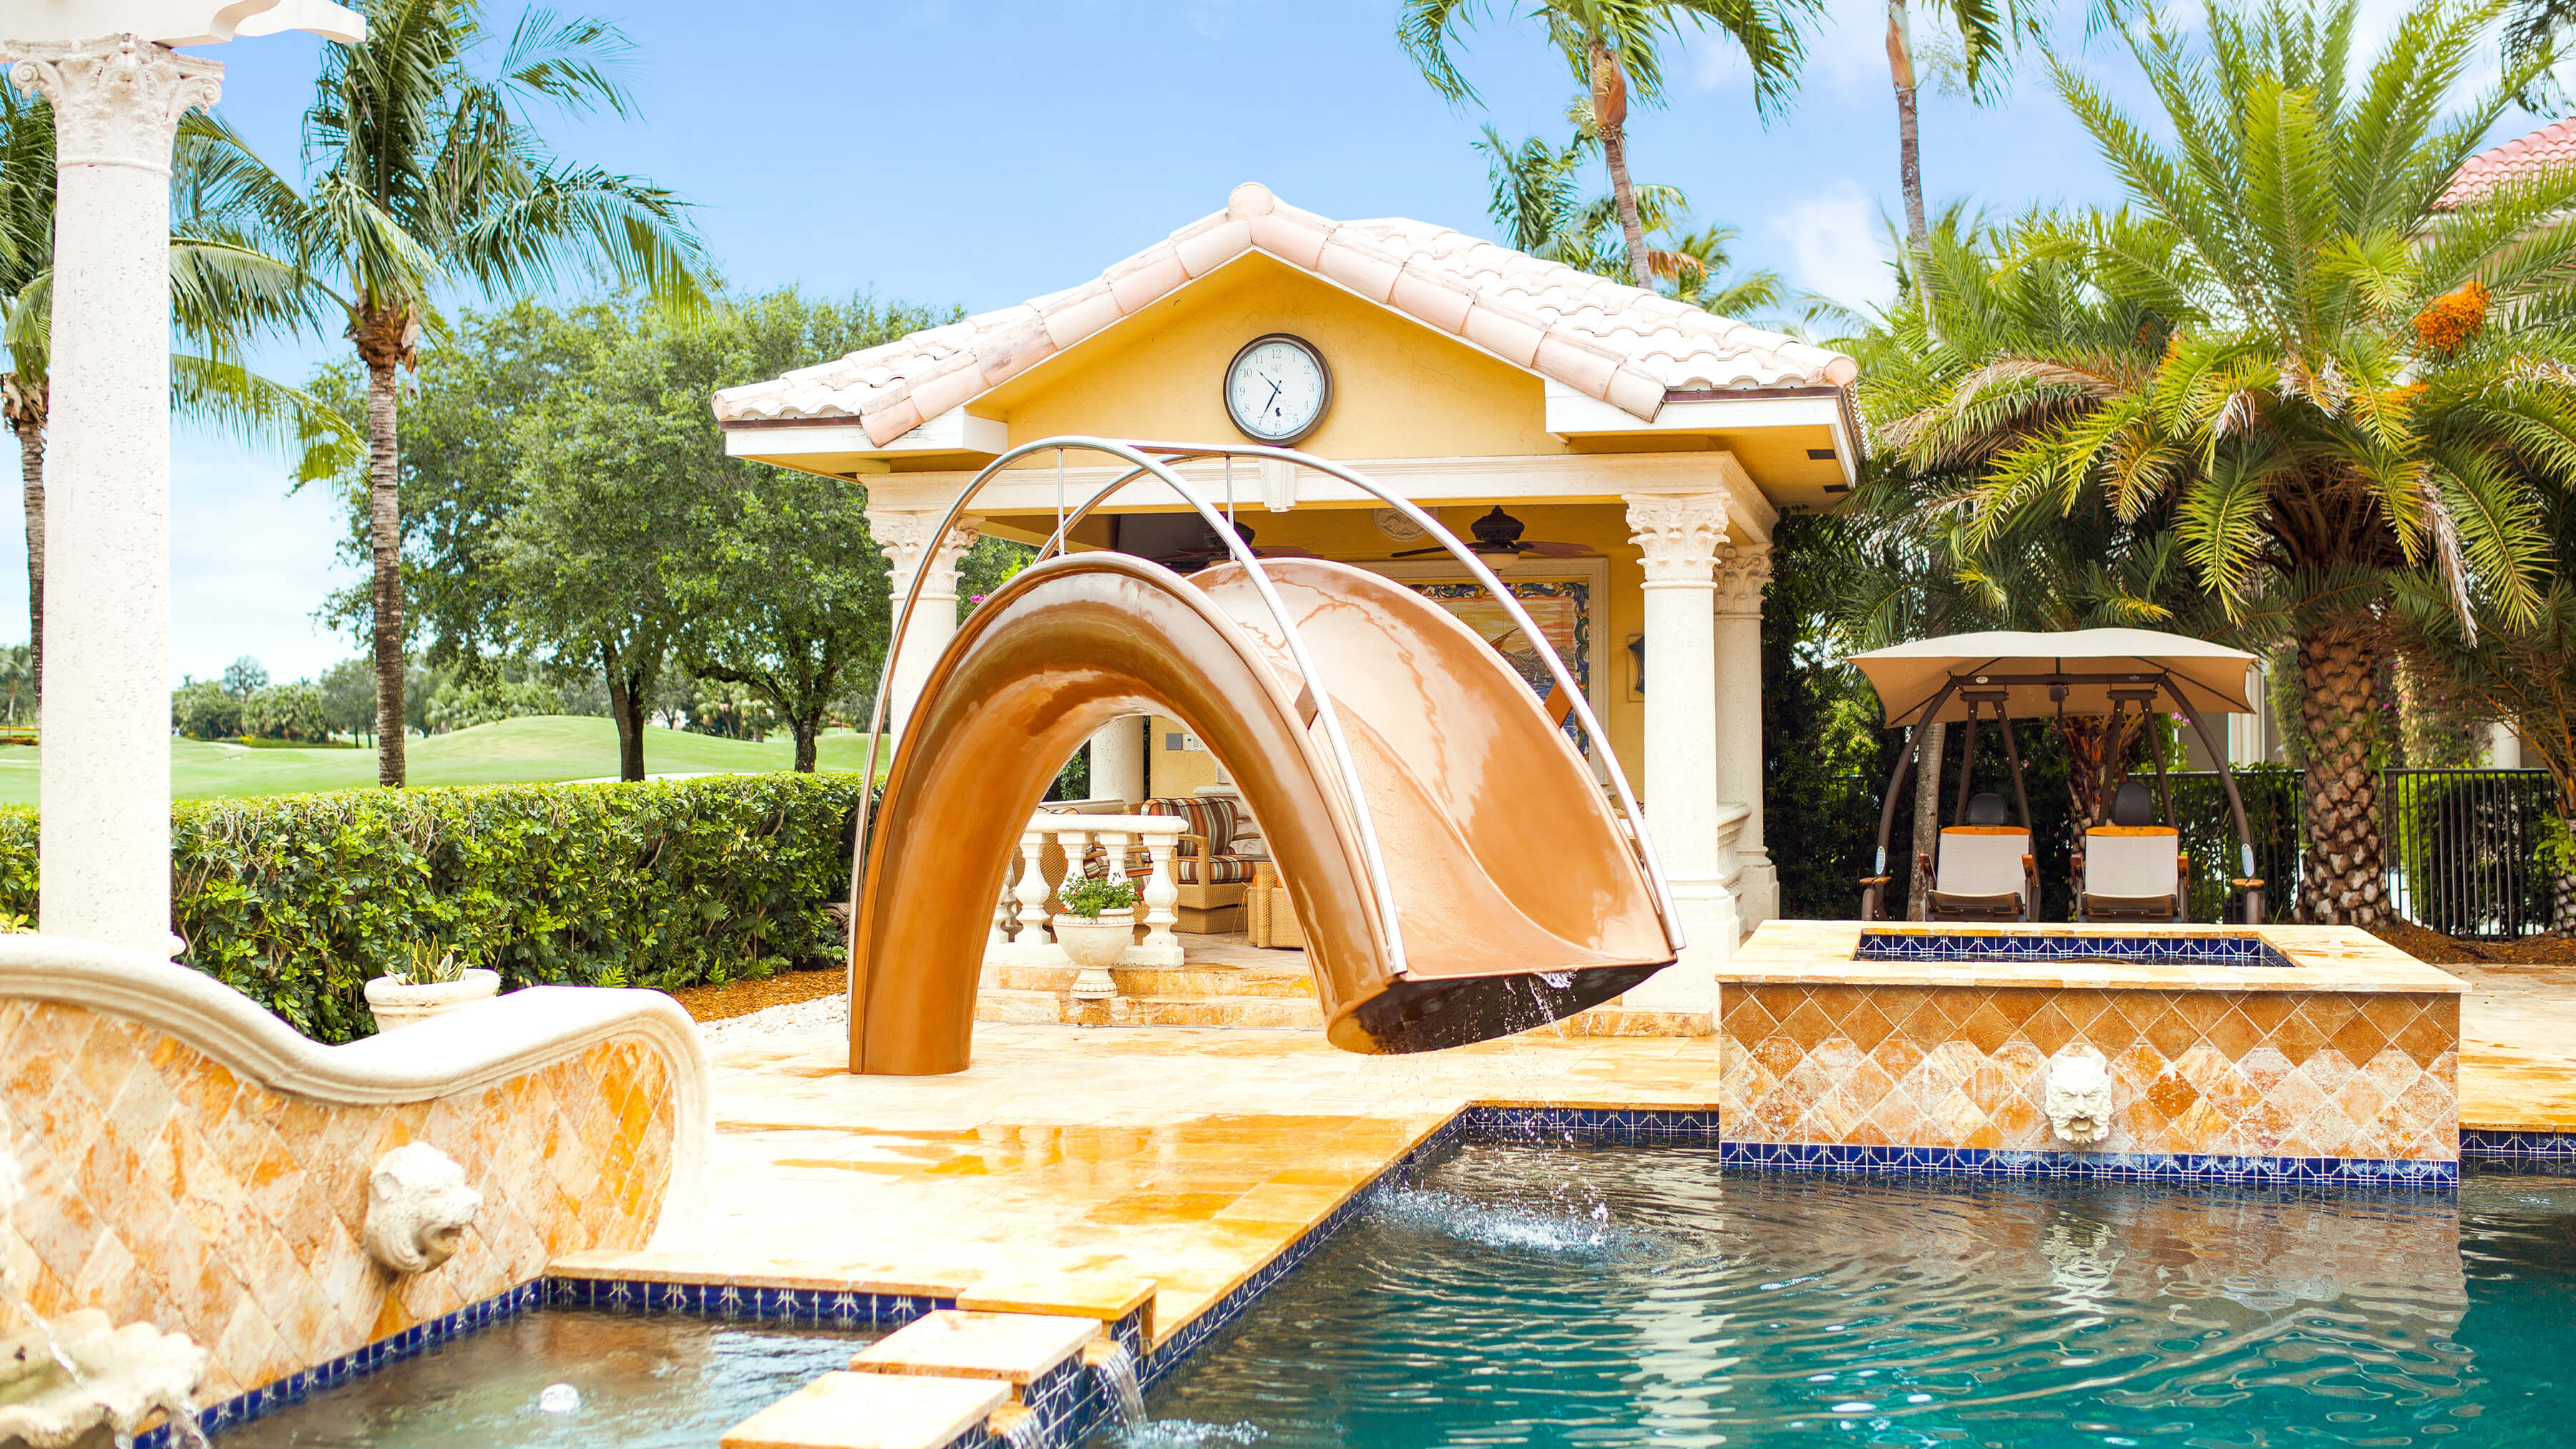 Bronze resin water slide with hand rails in front of BBQ area and palm trees.